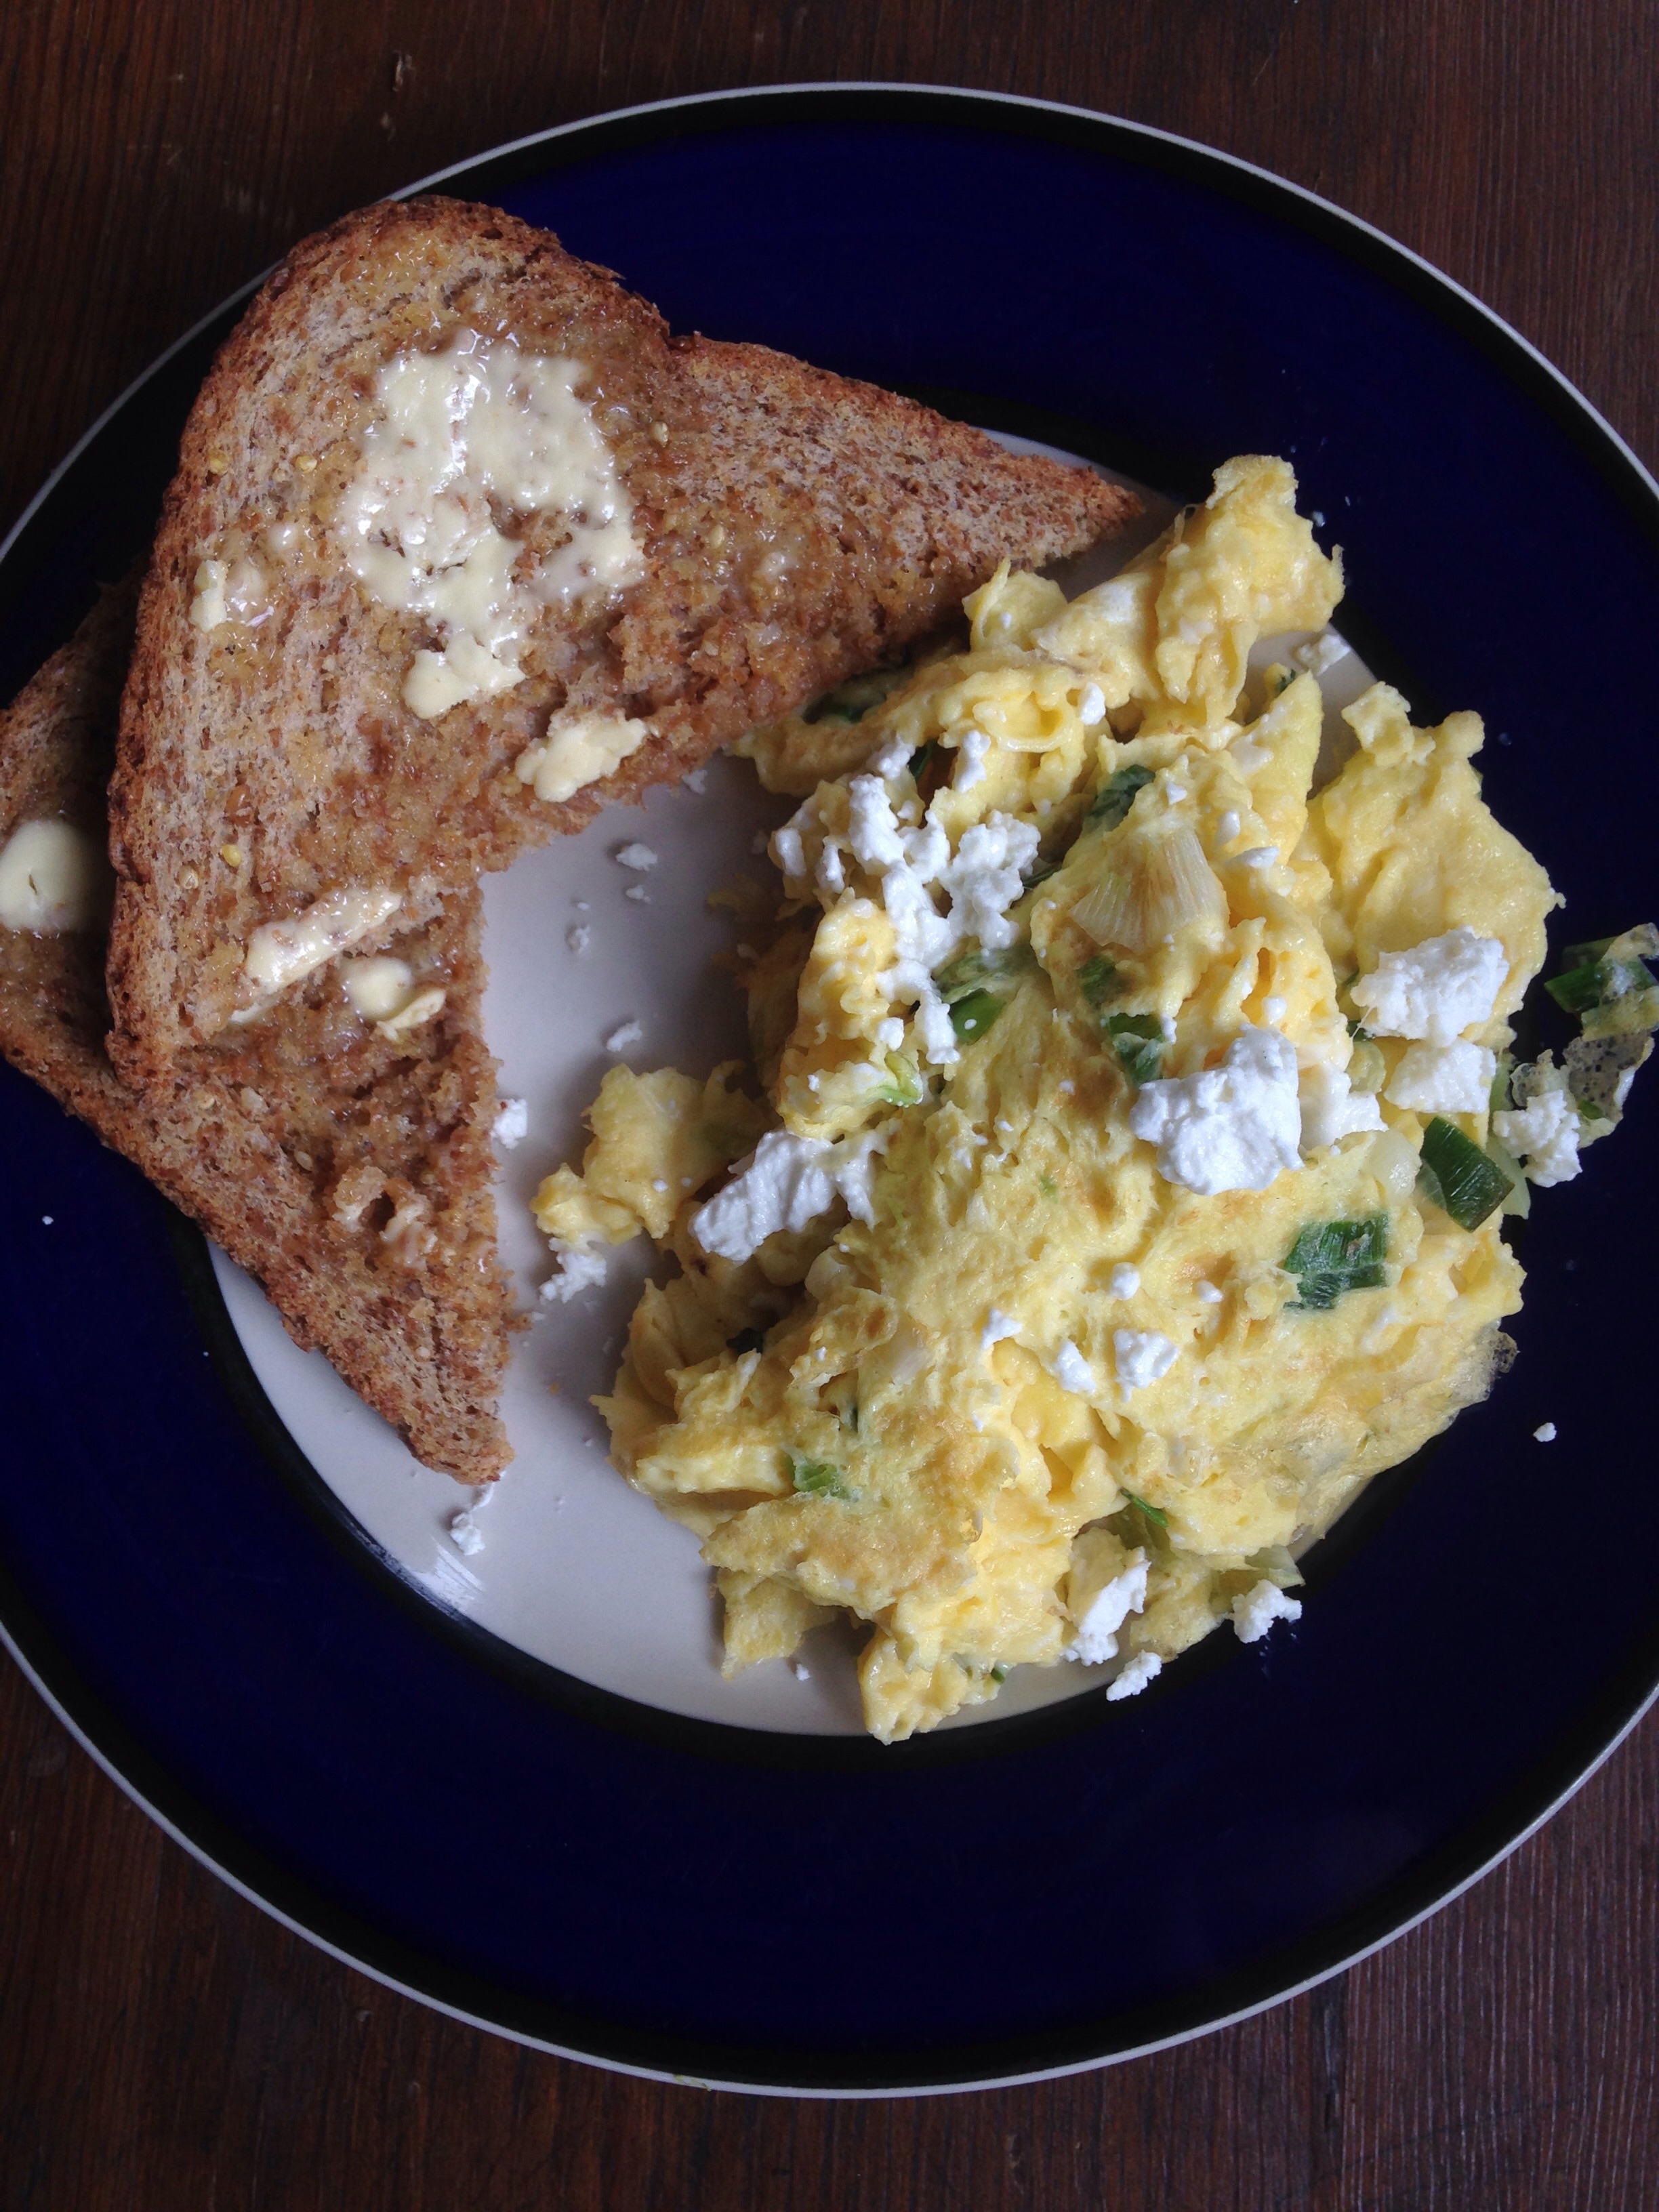 Chive scrambled eggs with goat cheese and Ezekiel toast